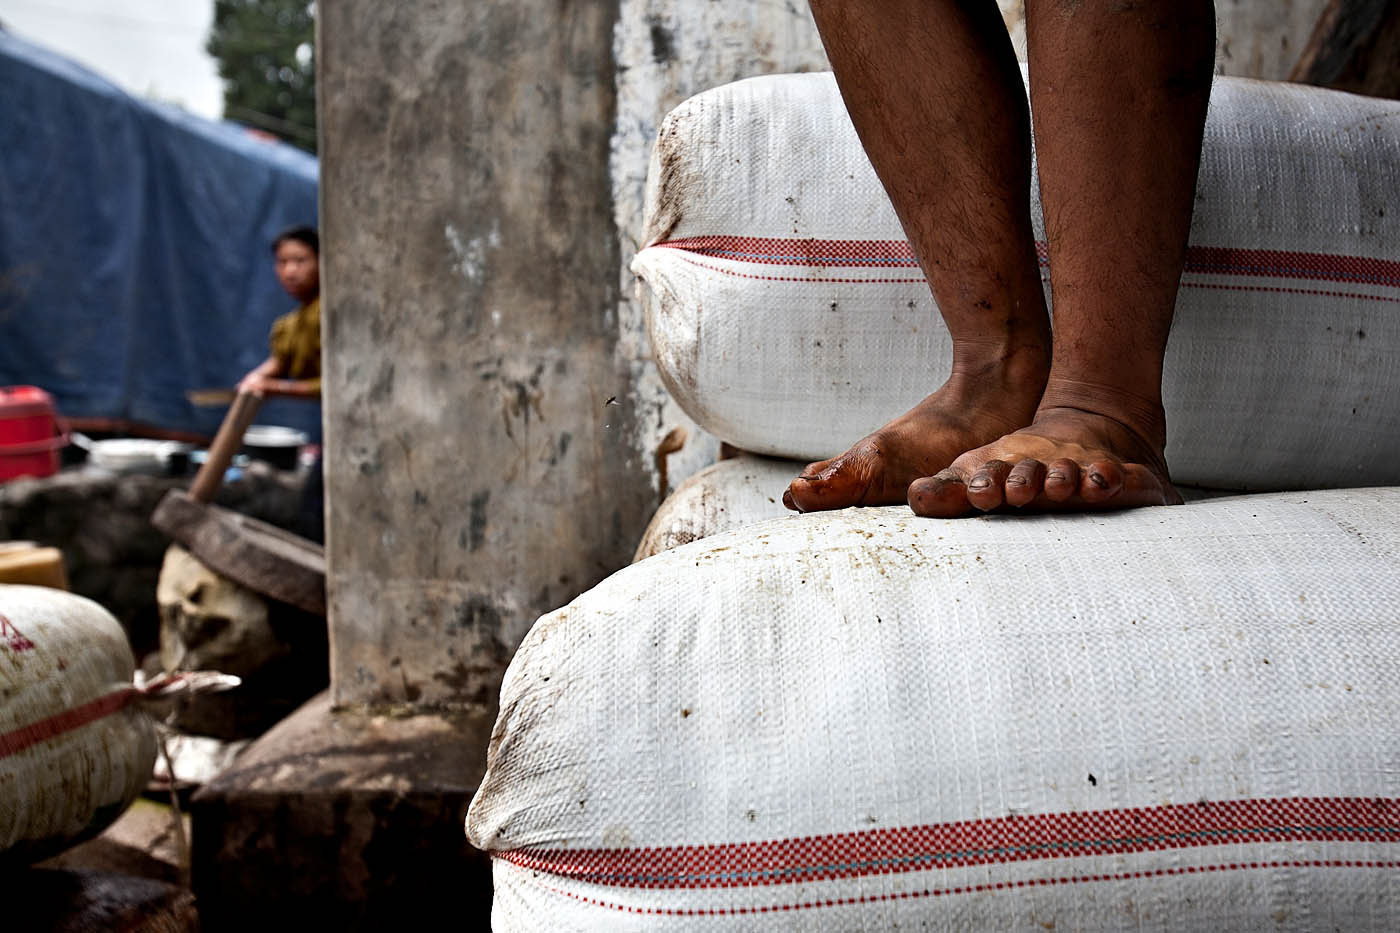 In an effort to maximize the capacity they can transport to larger markets, drivers generally compress tea sacks by foot before loading their trucks.